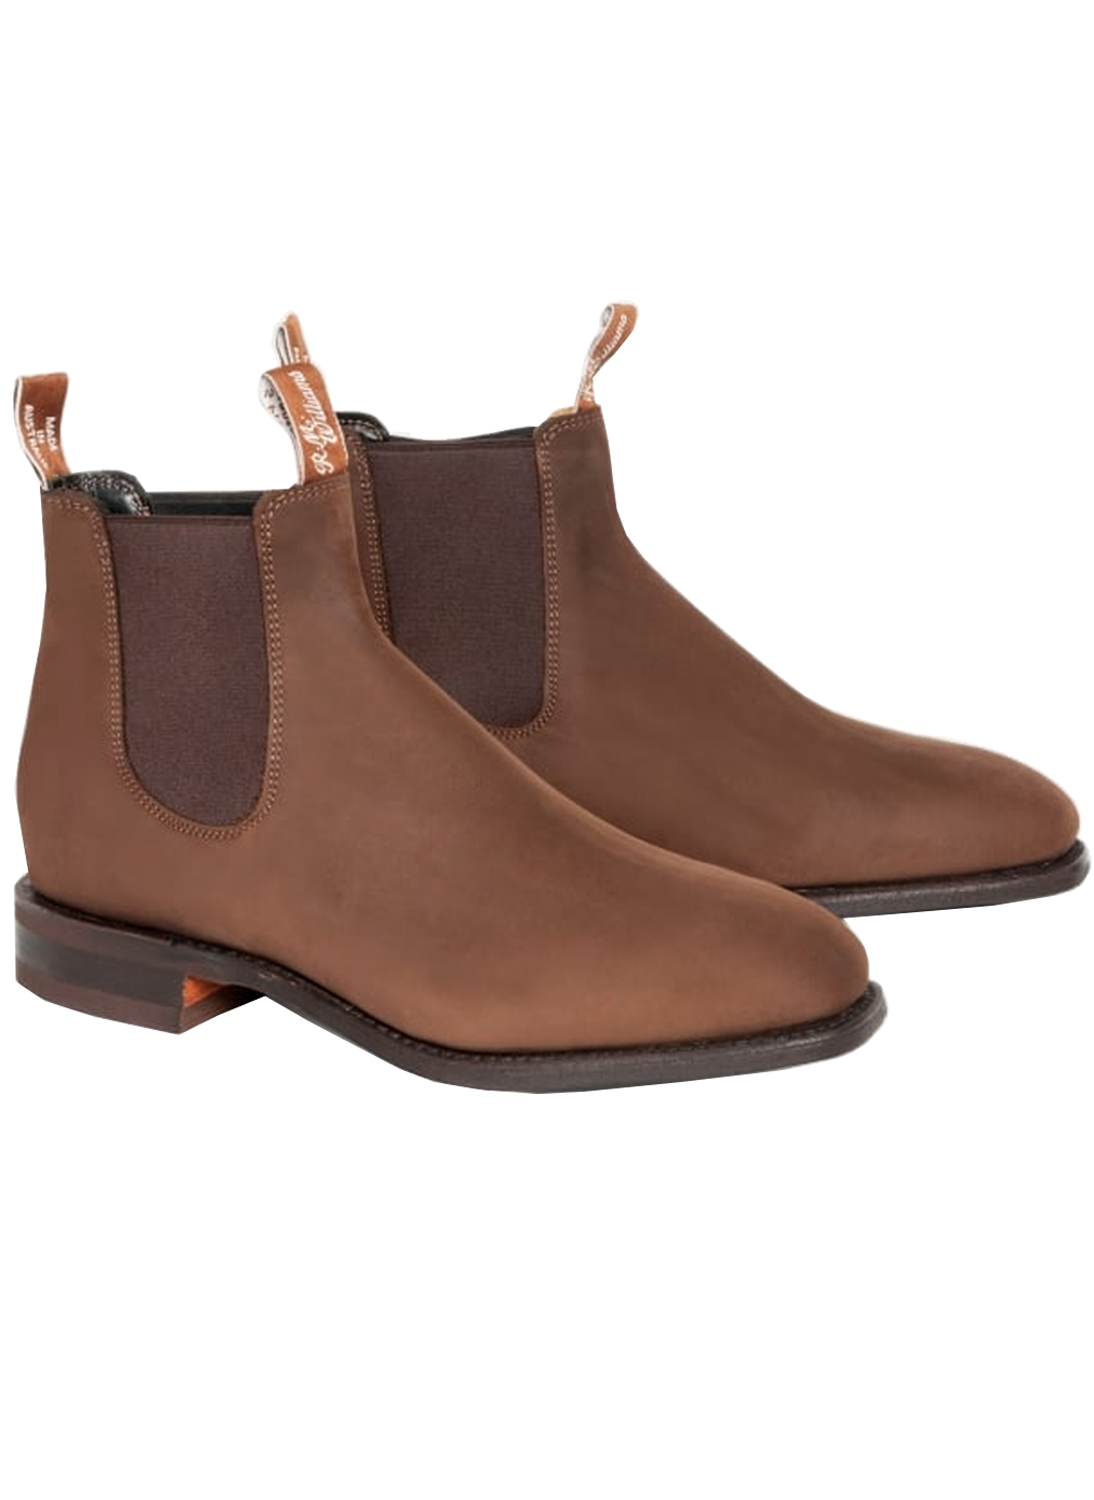 dff182aa9ae31 RM Williams Comfort Craftsman Nubuck Boots - Bredon Hill Country